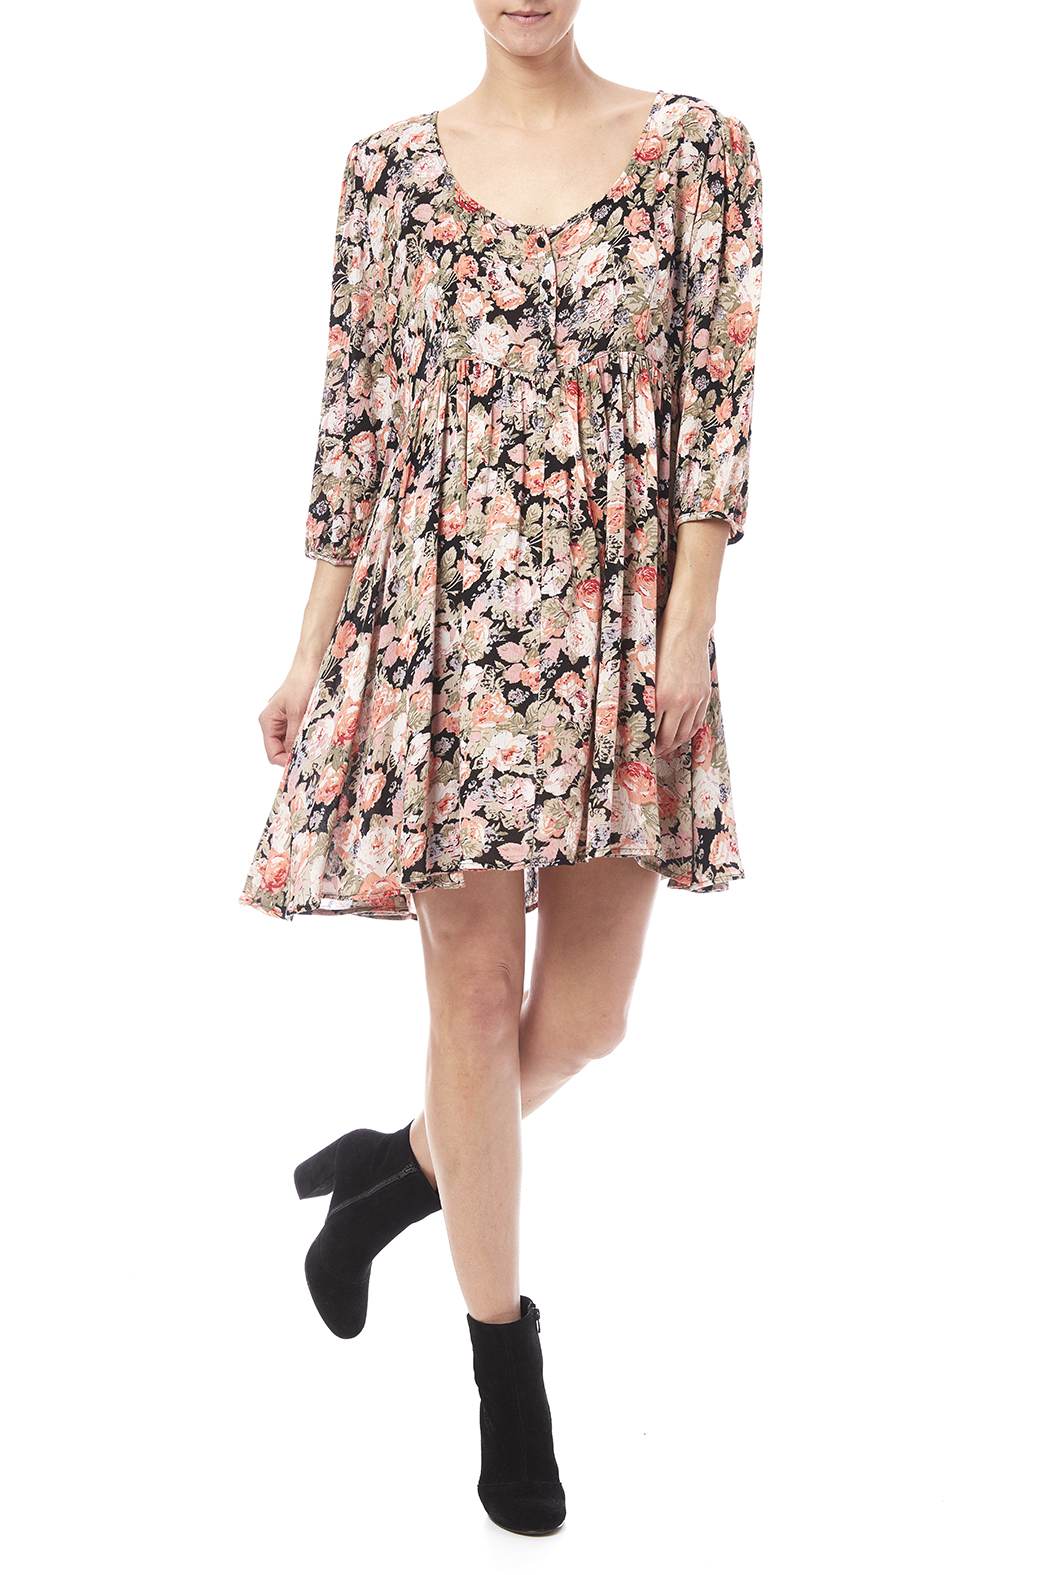 Angie Floral Babydoll Dress From Pennsylvania By Mad